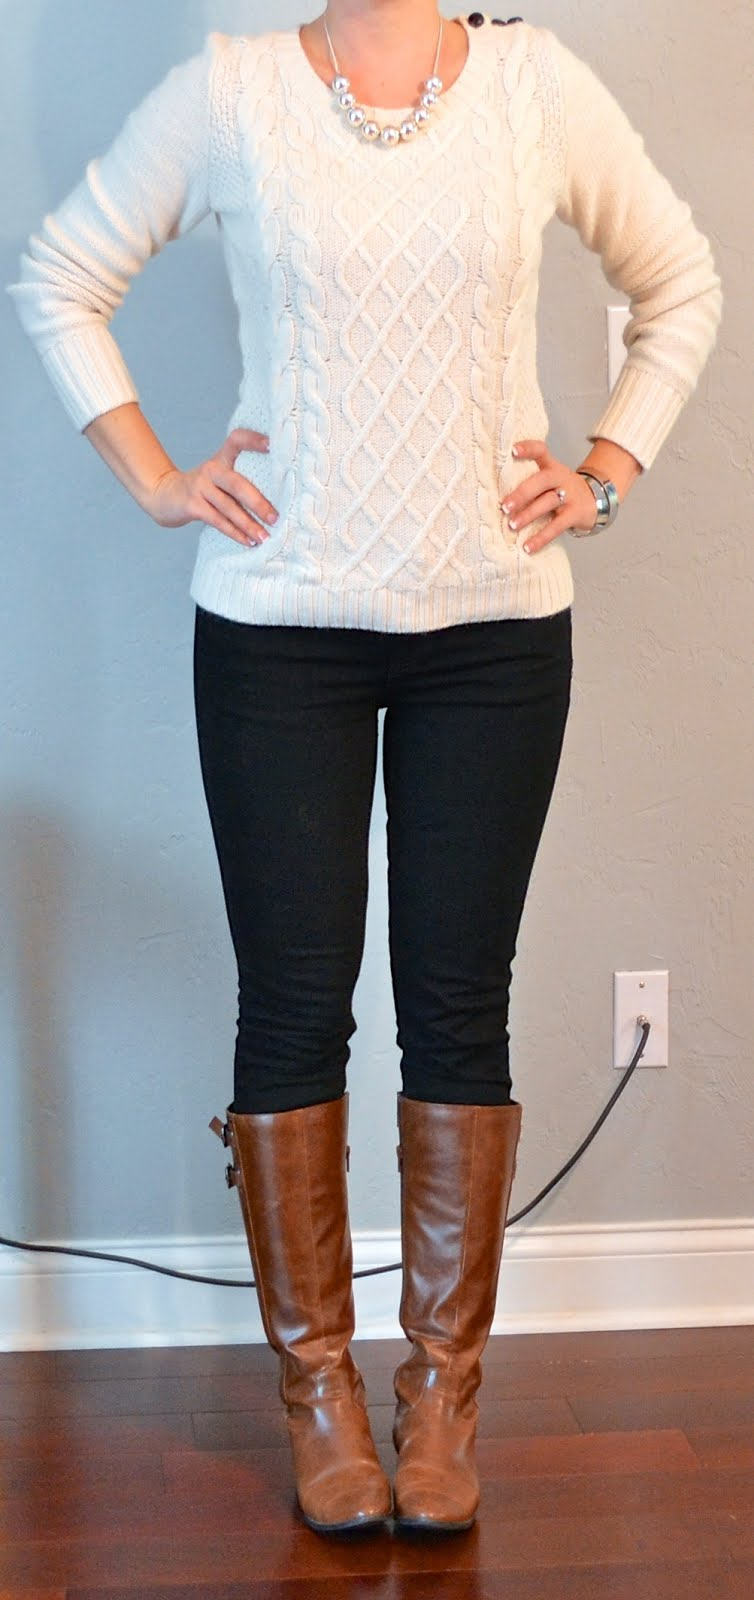 Outfits With Heels Part 1: Cute Winter Outfits (Ripped ...  Pinterest Skinny Jeans Outfit